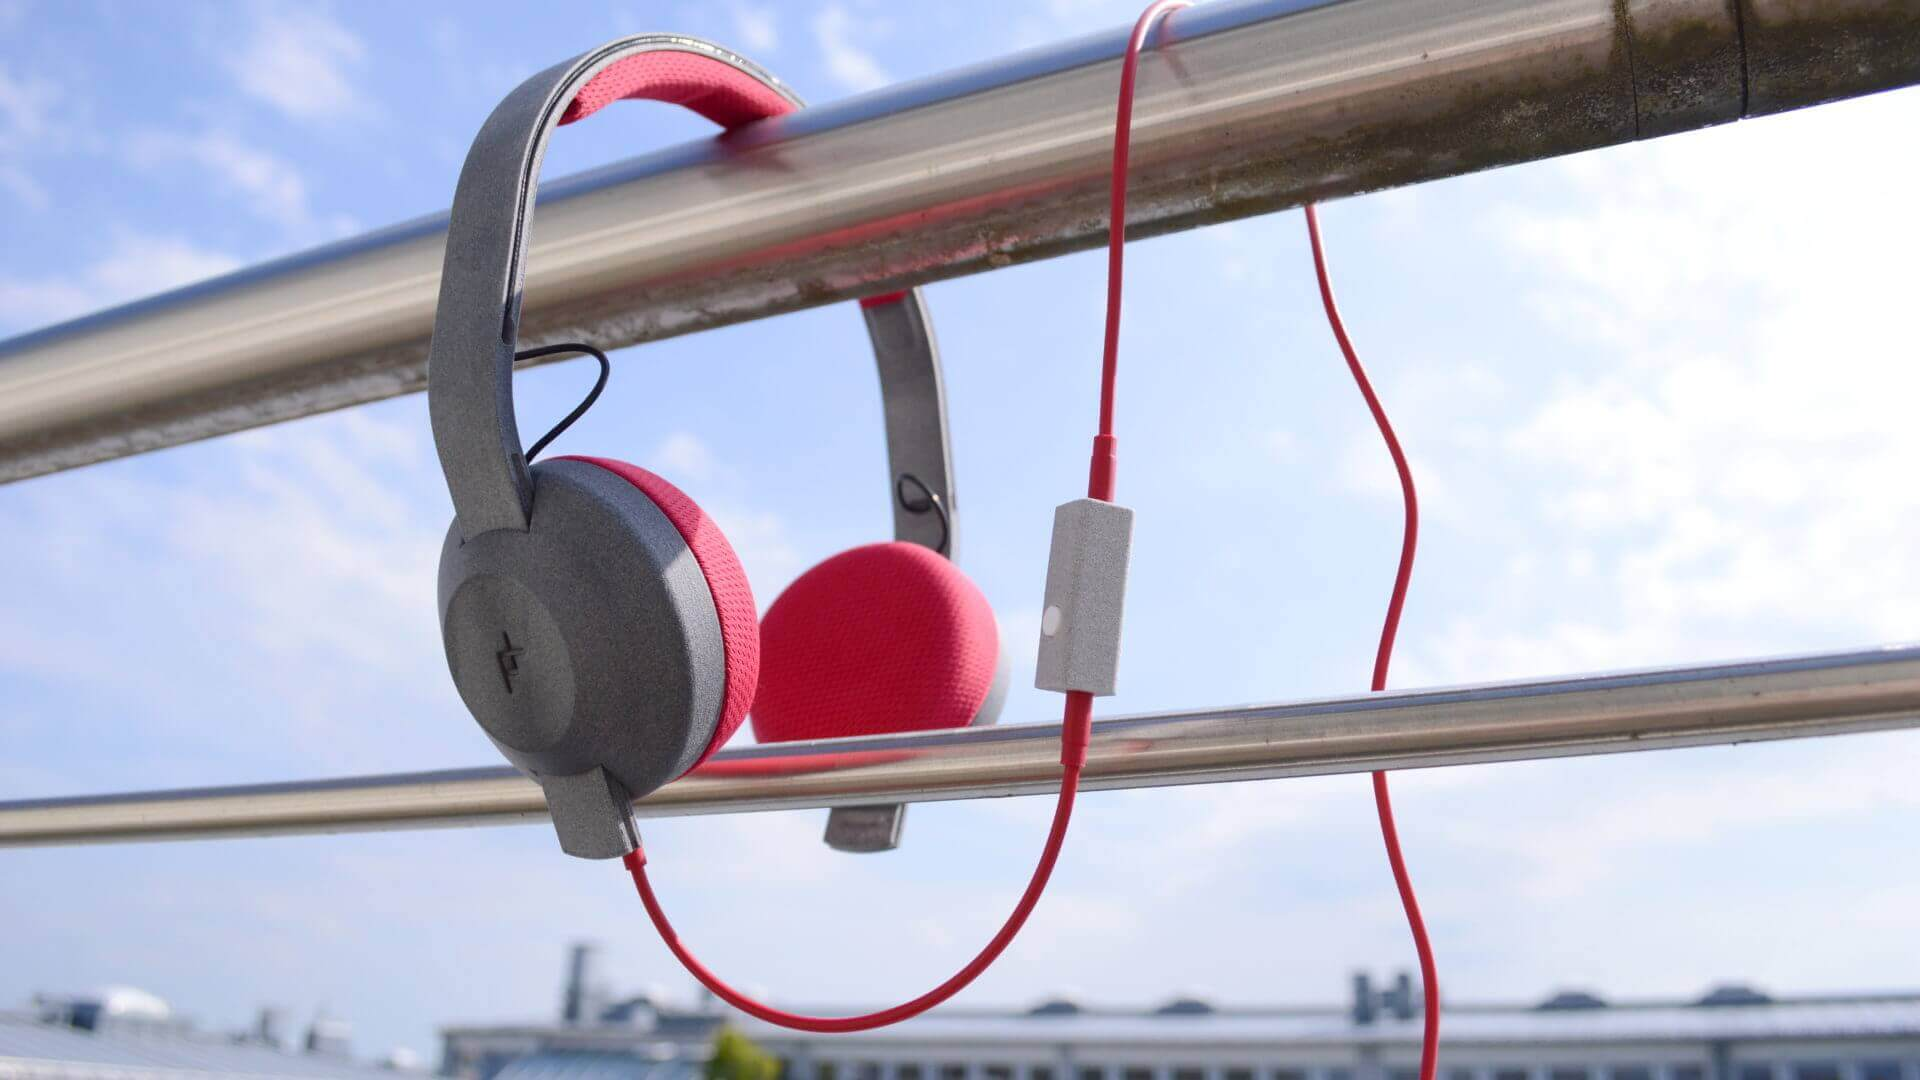 Print Plus DIY Headphones Review: Pump Up the Volume | All3DP